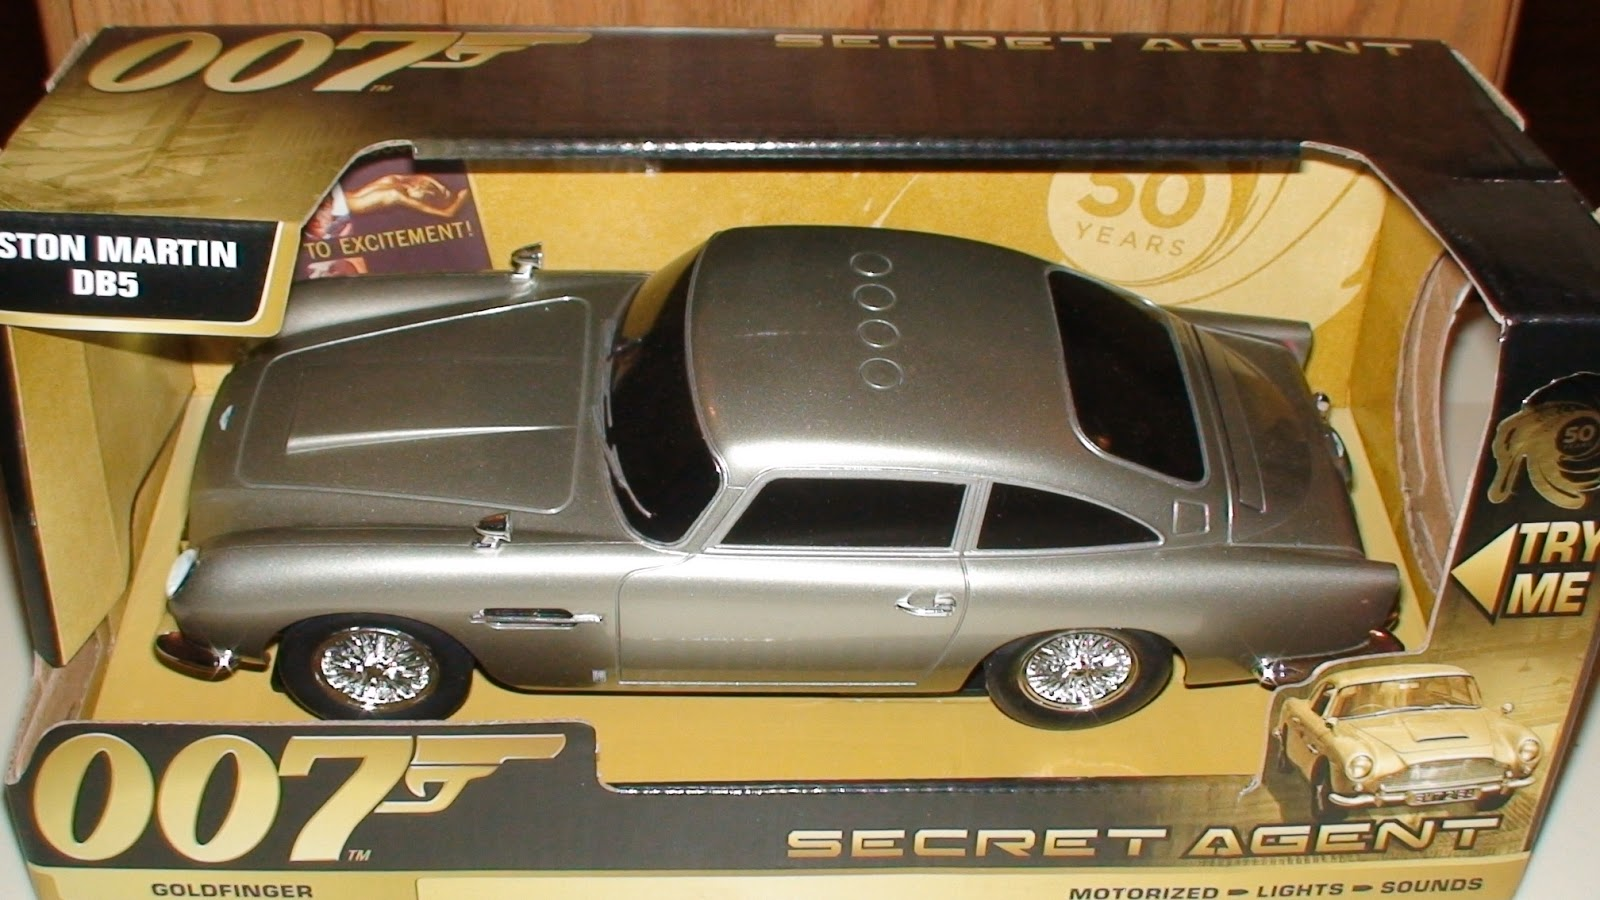 007, James Bond, Secret Agent vehicle, Toystate, holiday gifts